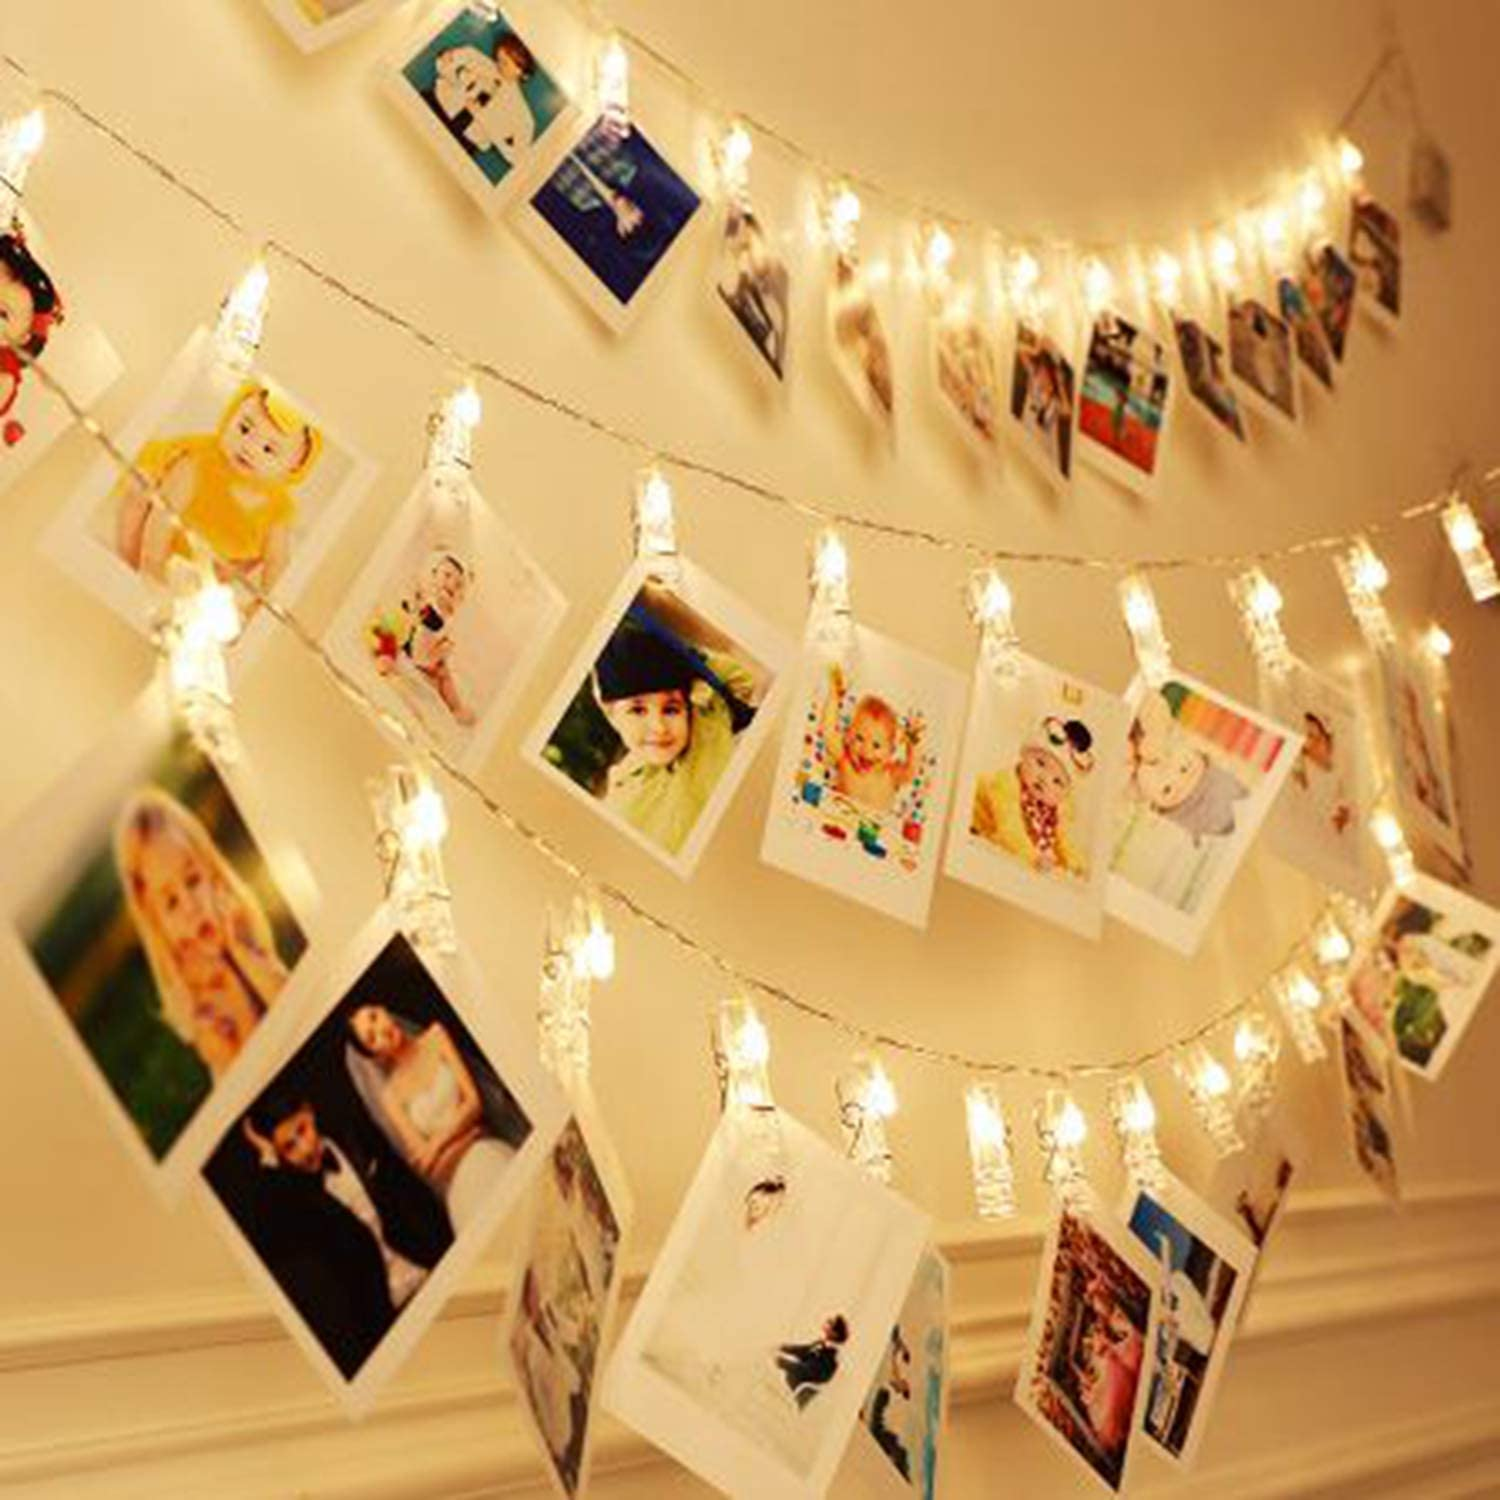 40 LEDs 20 Photo Clips String Fairy lights Decoration for Home Living Room Bedroom Indoor Christmas Party Wedding for Photo Picture Hanging display,3AA Battery Operated (13ft Warm White)